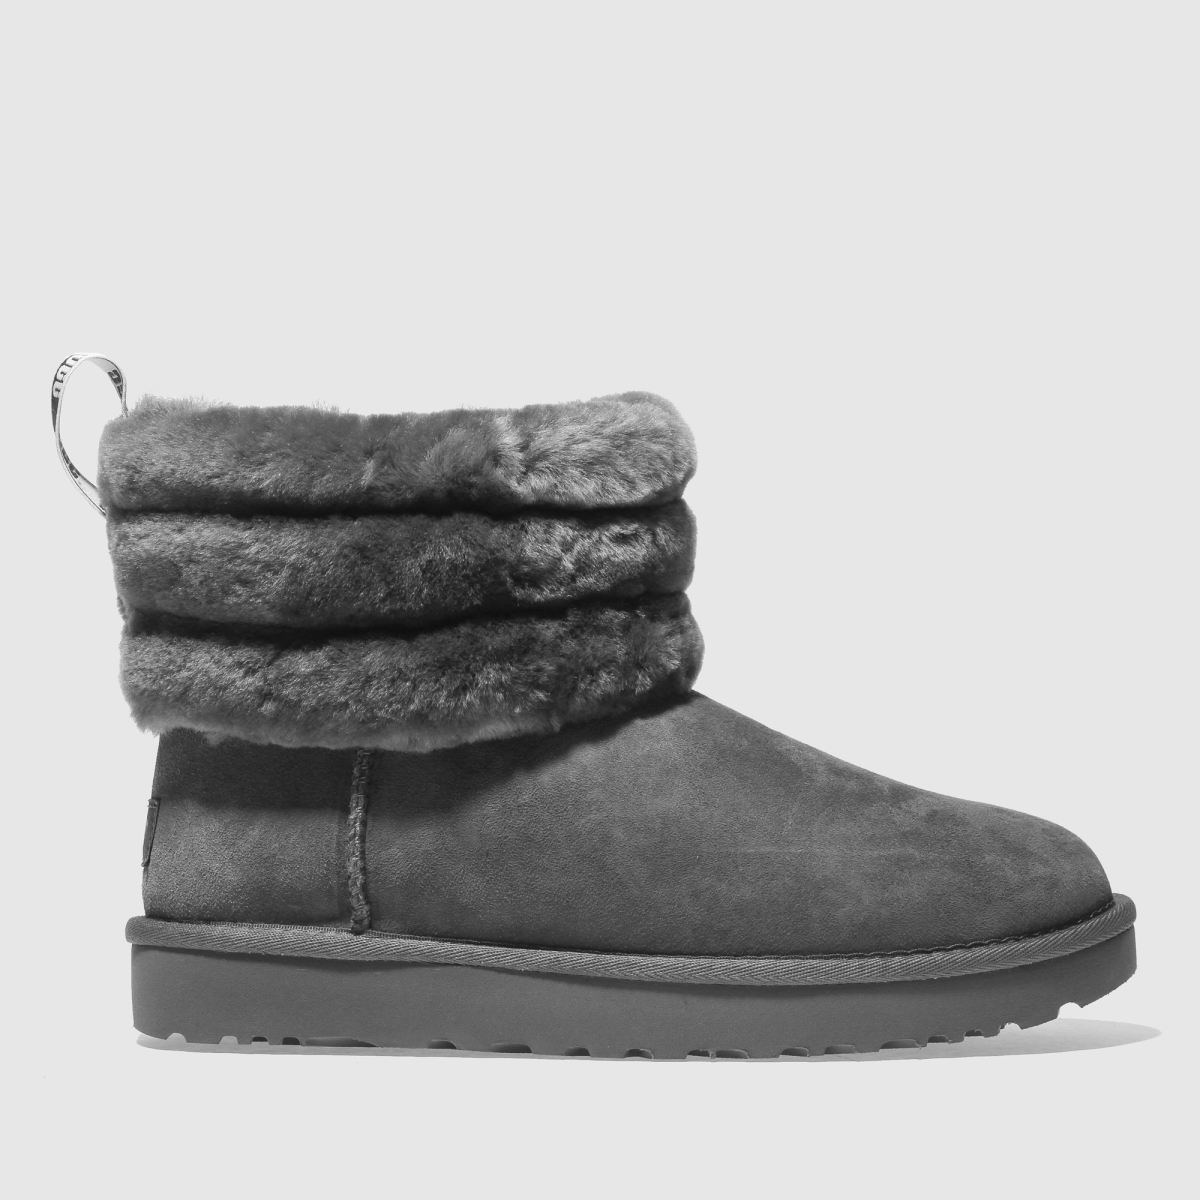 Ugg Grey Fluff Mini Quilted Boots